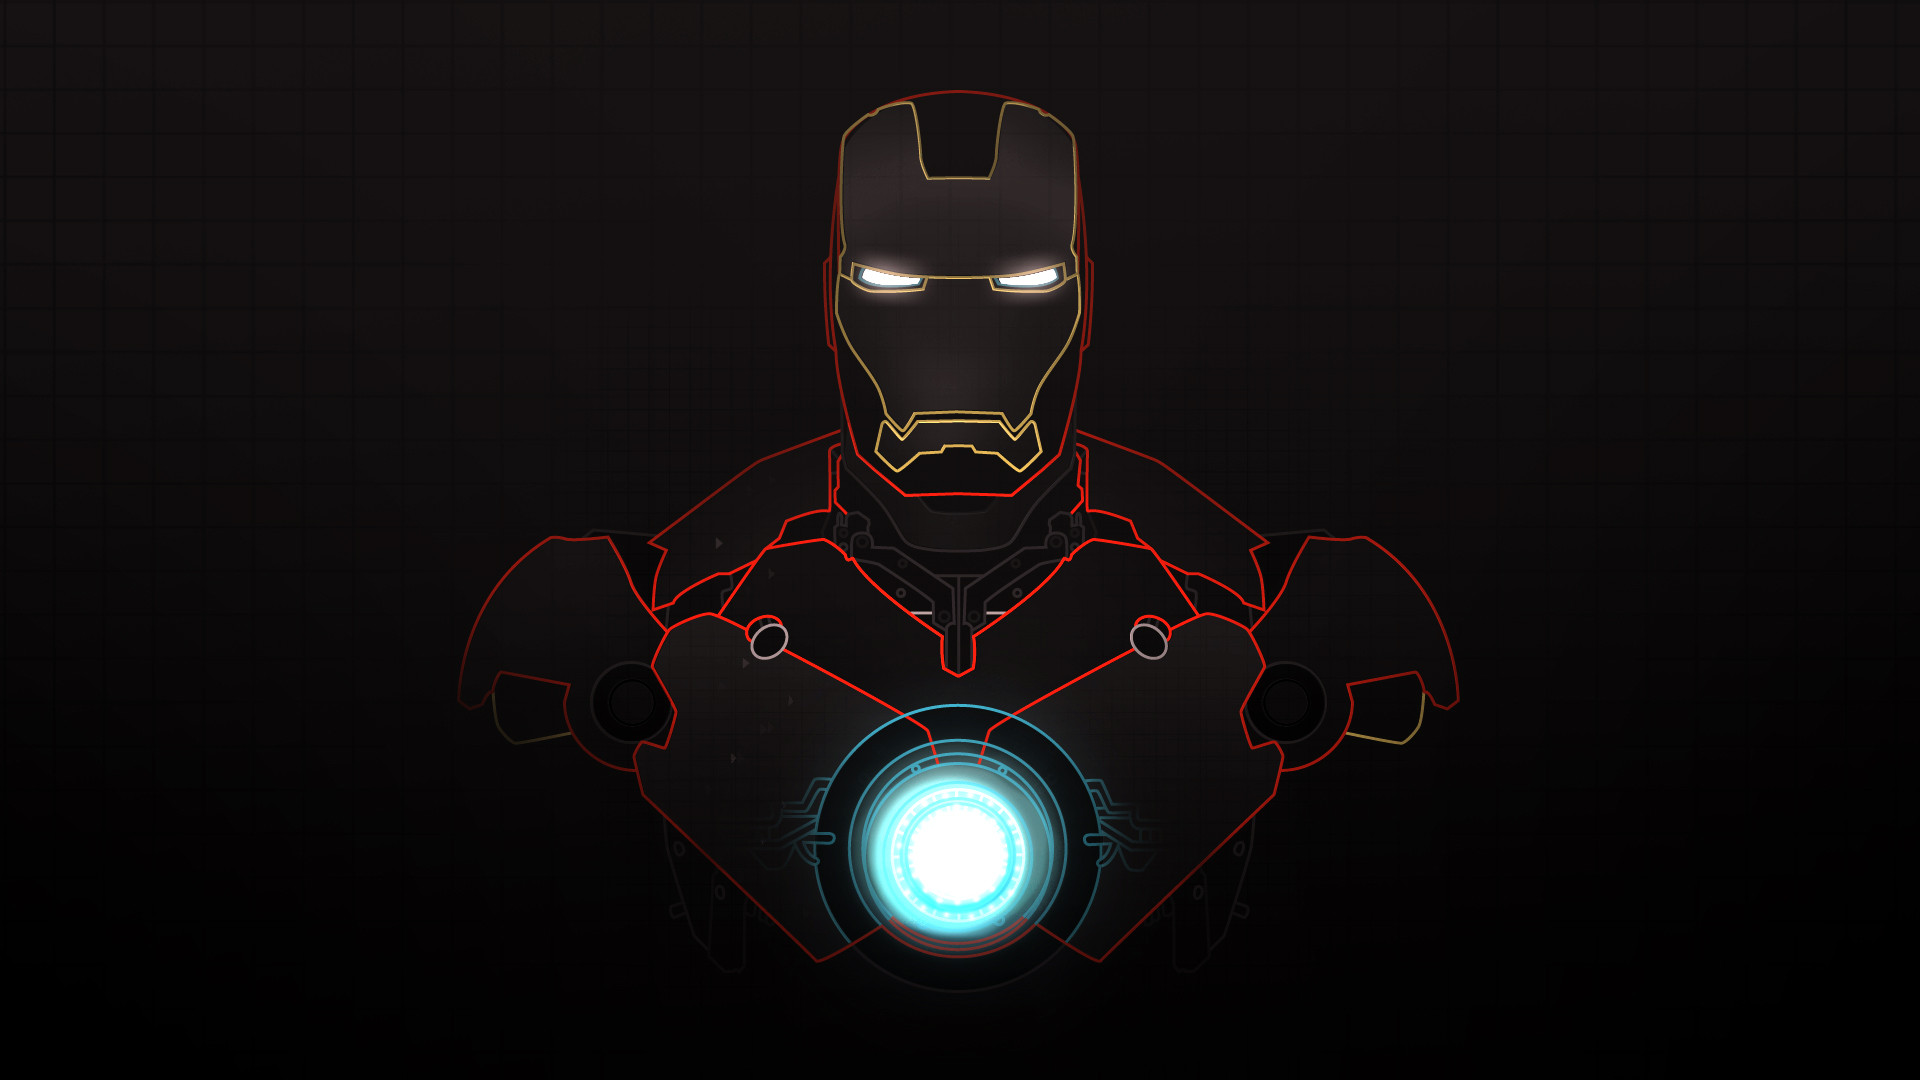 View Iron Man Wallpaper Hd iron man_wallpaper_hd_for_android iron_man_helmet_hd_wallpapers iron_man_wallpaper_1920x1080 iron_man_wallpaper_android ...